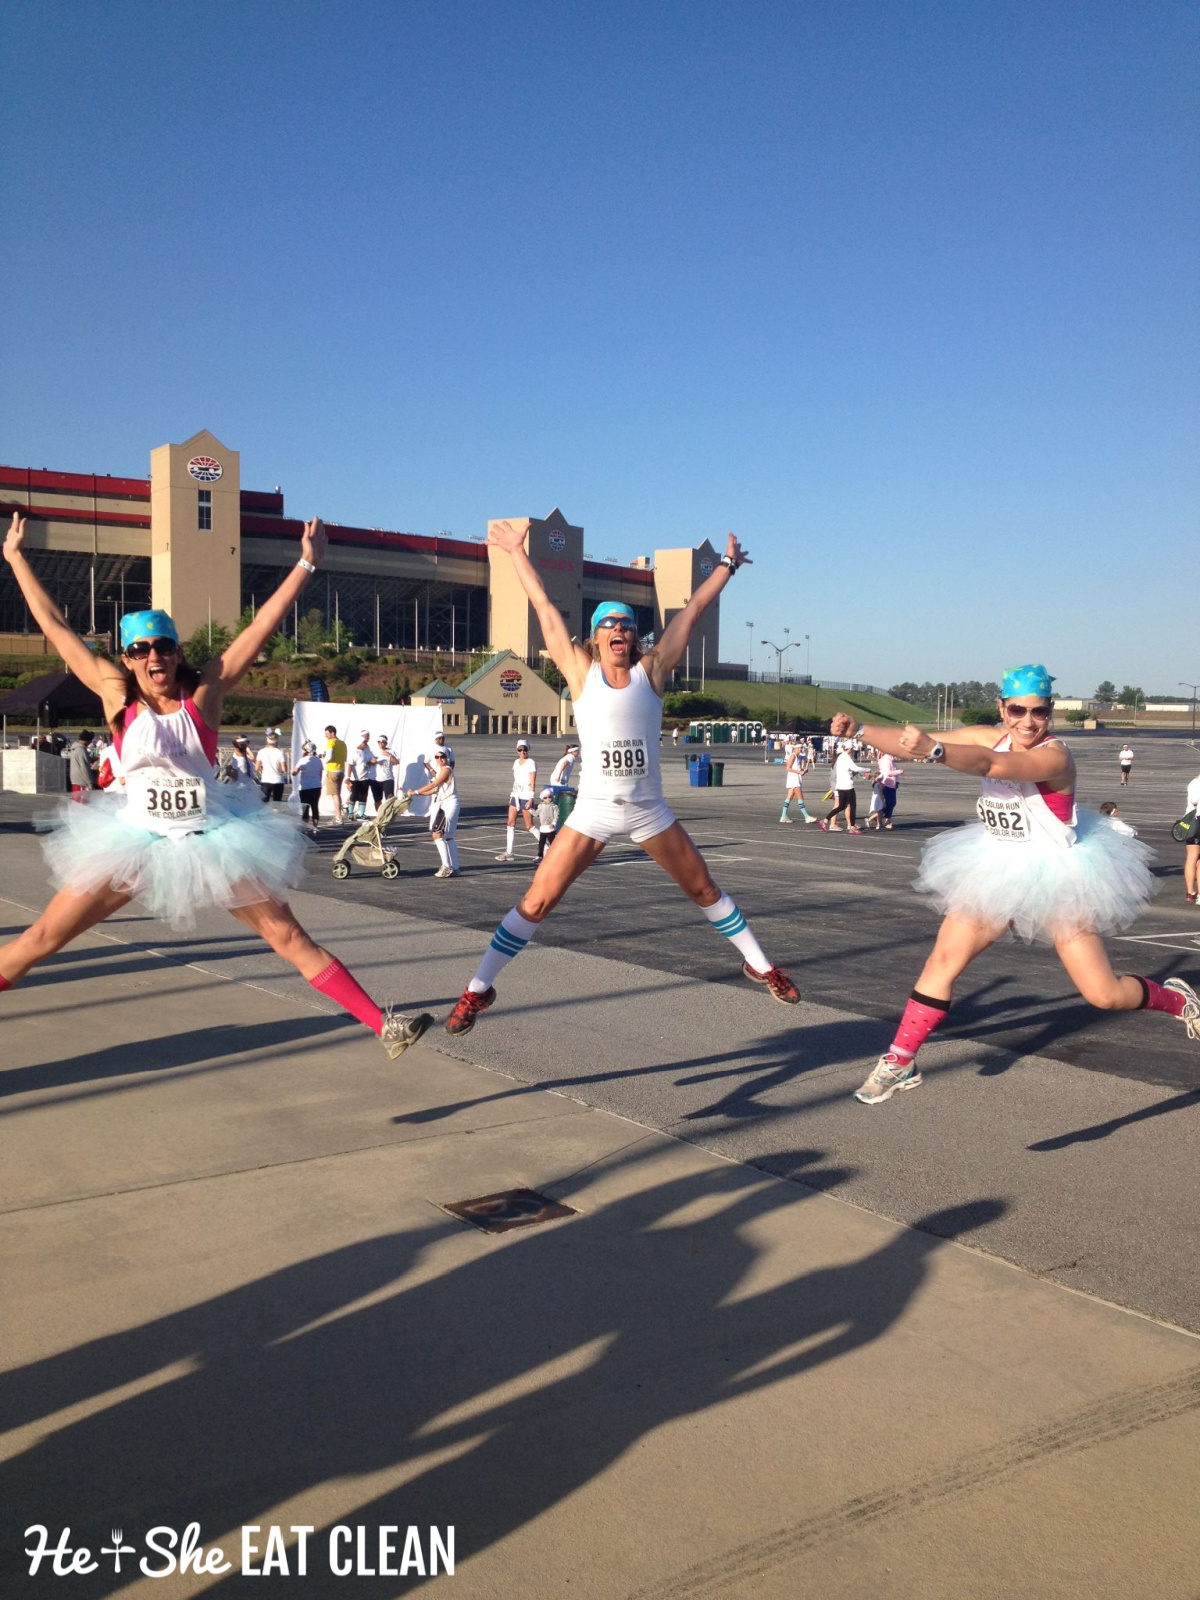 3 females jumping in the air wearing tutus before the start of the color run